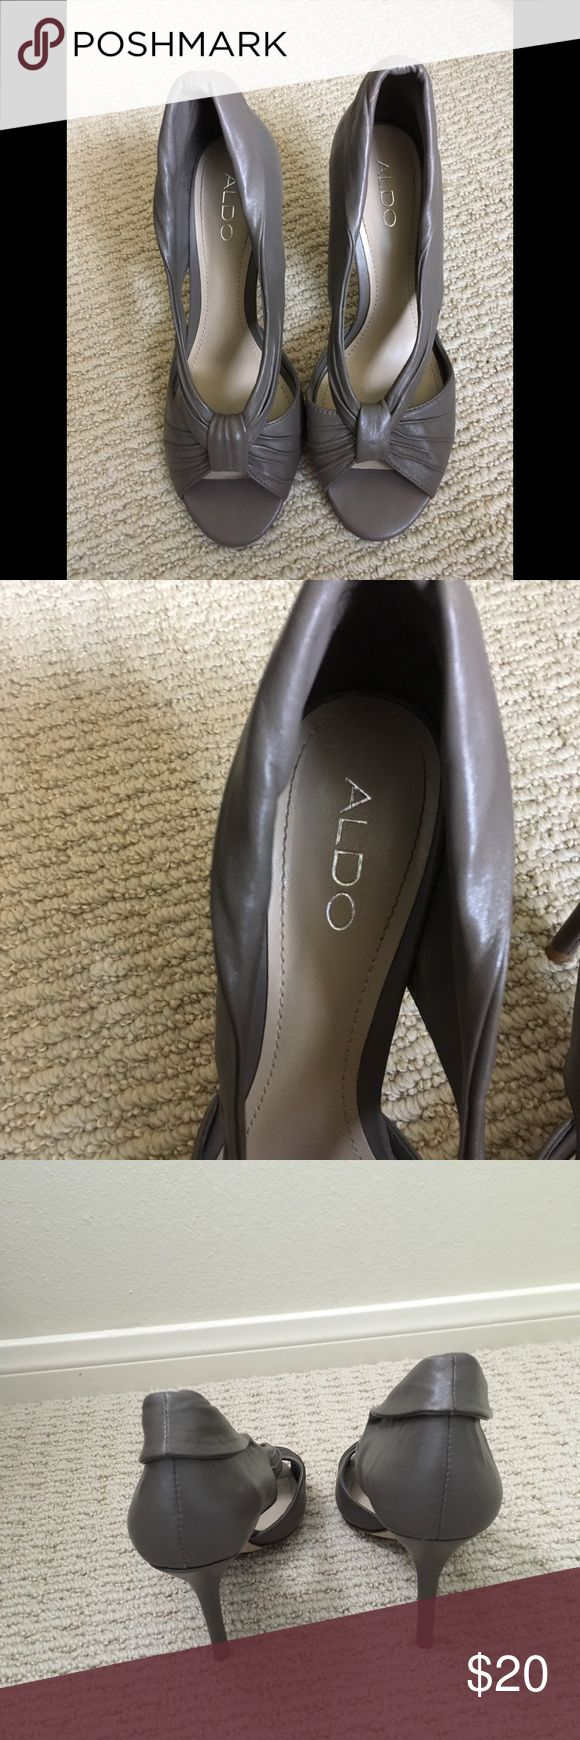 Gray/pewter shoes Gray/pewter heels Aldo Shoes Heels